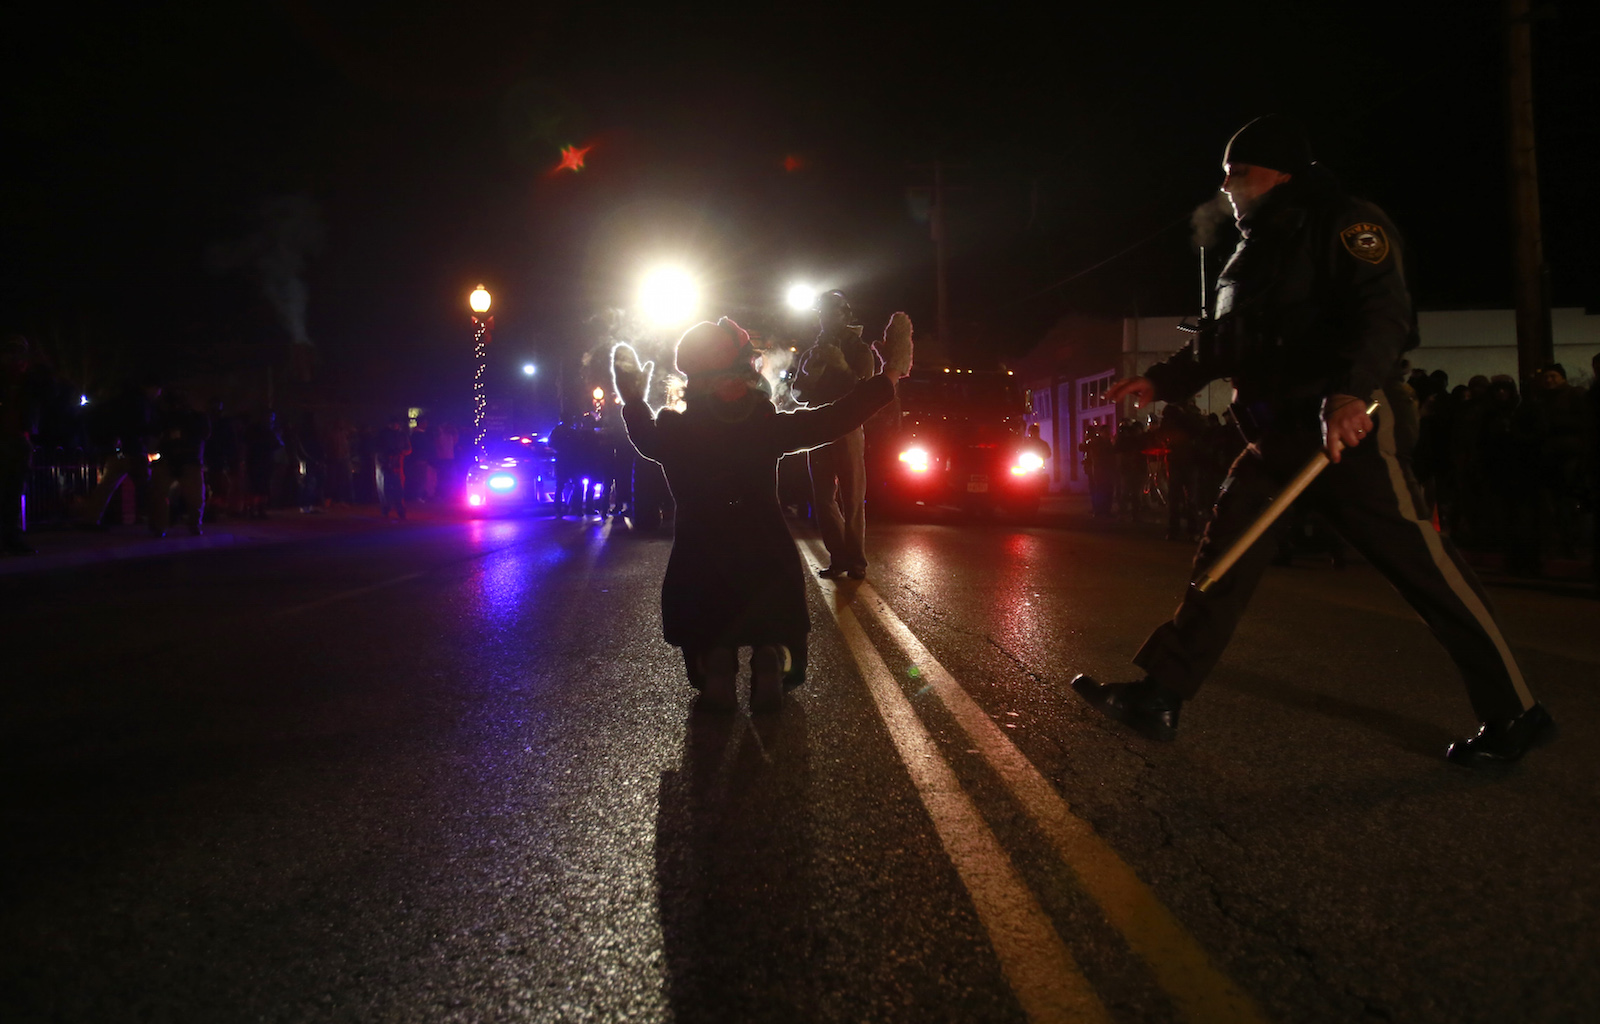 A police officer (R) moves in to arrest a protester on her knees in front of police cars in Ferguson, Missouri, November 25, 2014. Missouri's governor ordered hundreds more National Guard troops to the St. Louis suburb rocked by rioting after a white policeman was cleared in the fatal shooting of an unarmed black teenager REUTERS/Adrees Latif